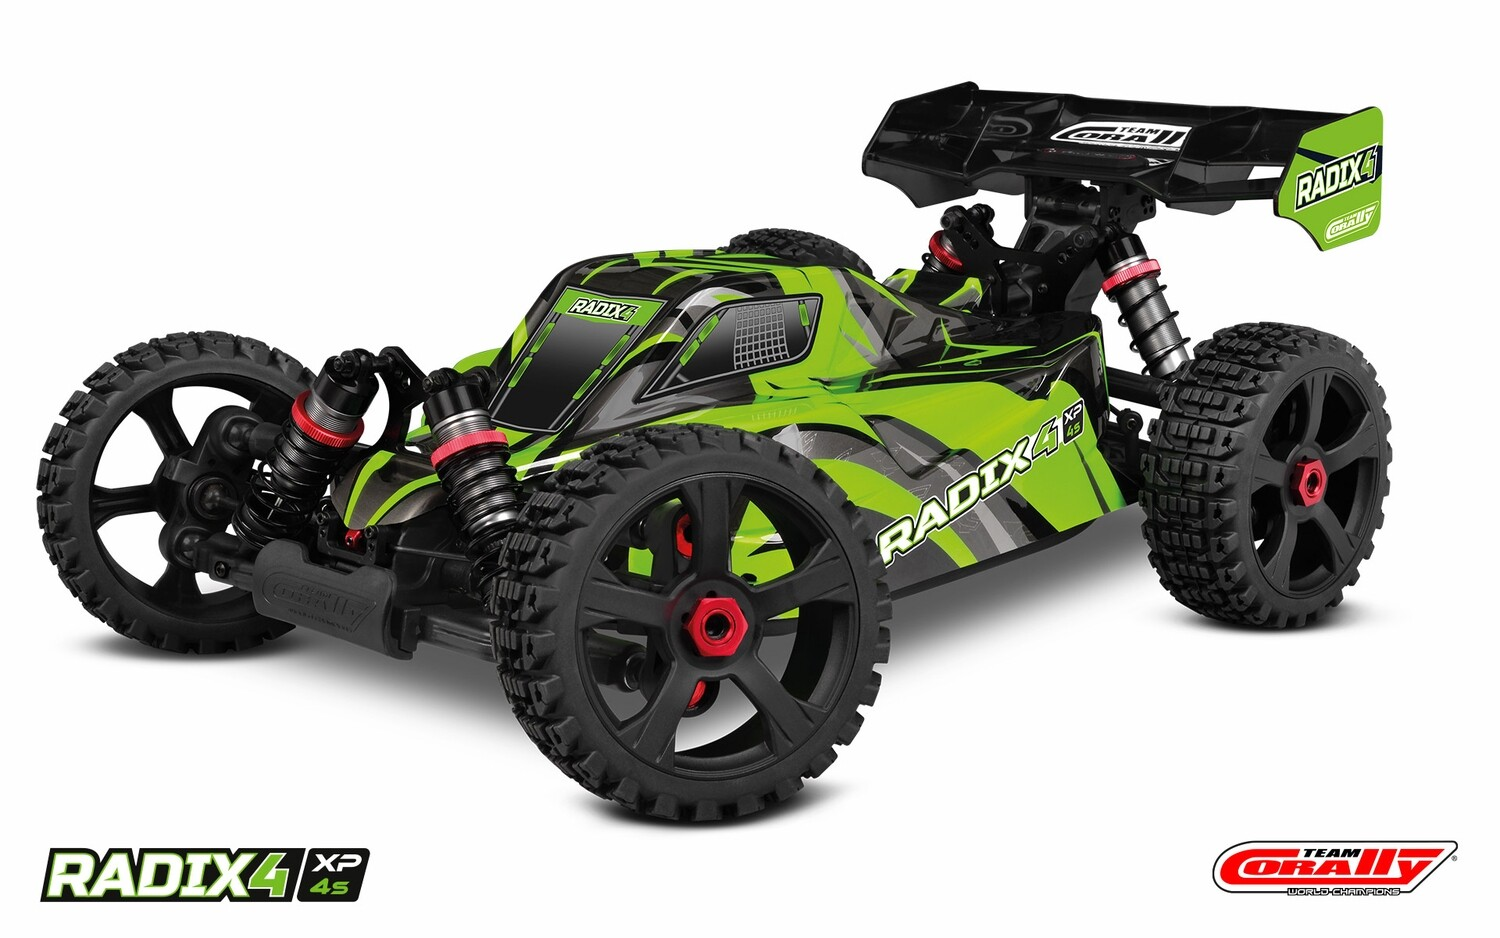 Corally 1/8 Radix4 XP 4WD 4S Brushless RTR Buggy (No Battery or Charger)